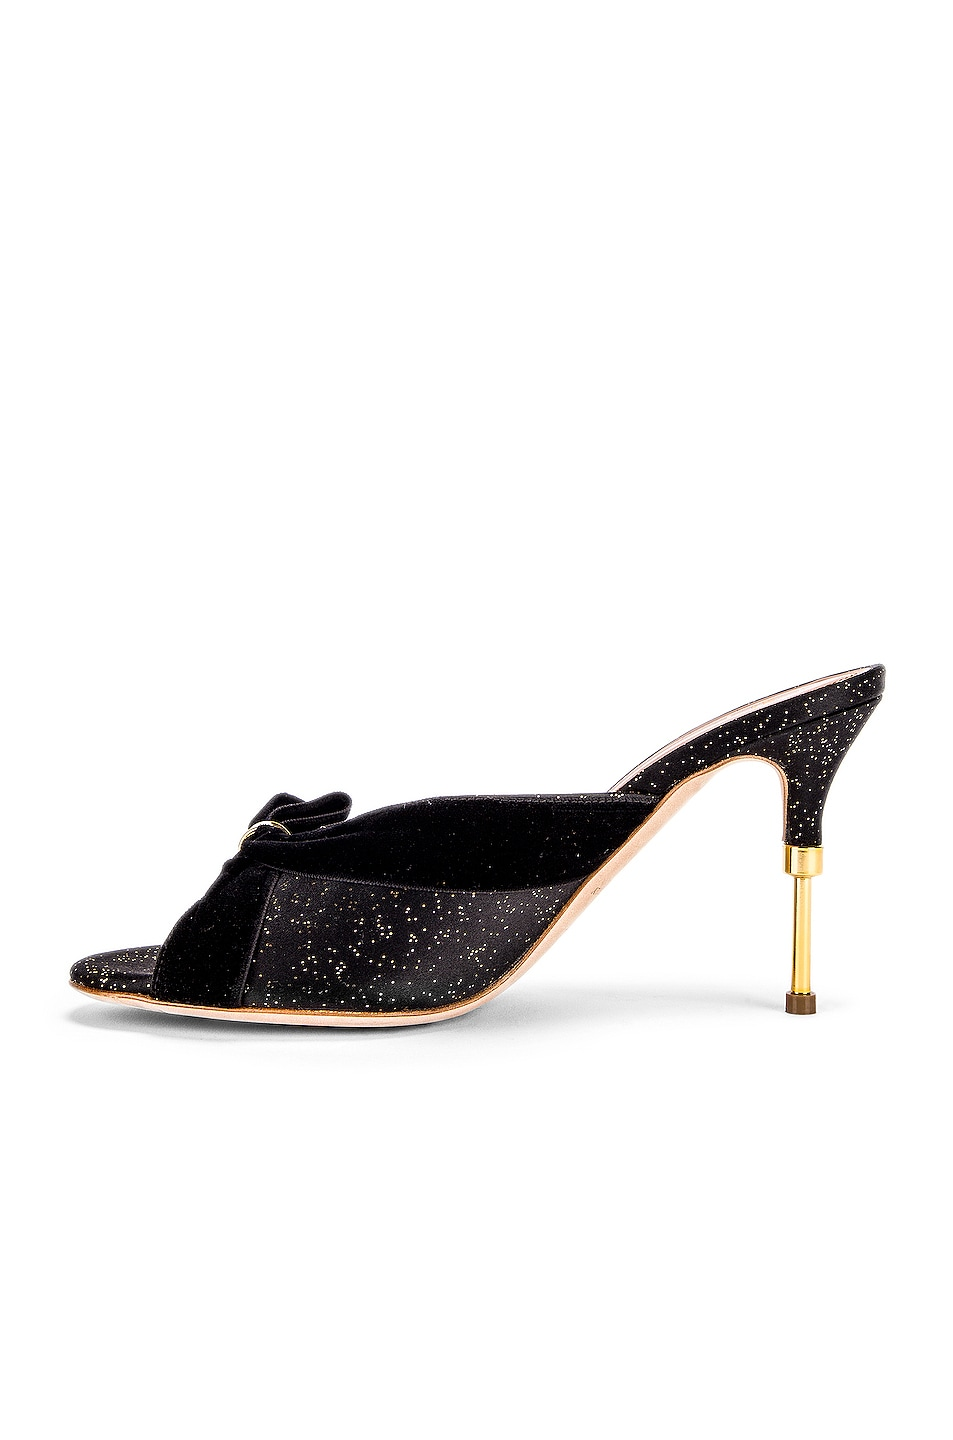 Image 5 of Malone Souliers Paiige 85 Heel in Black & Gold